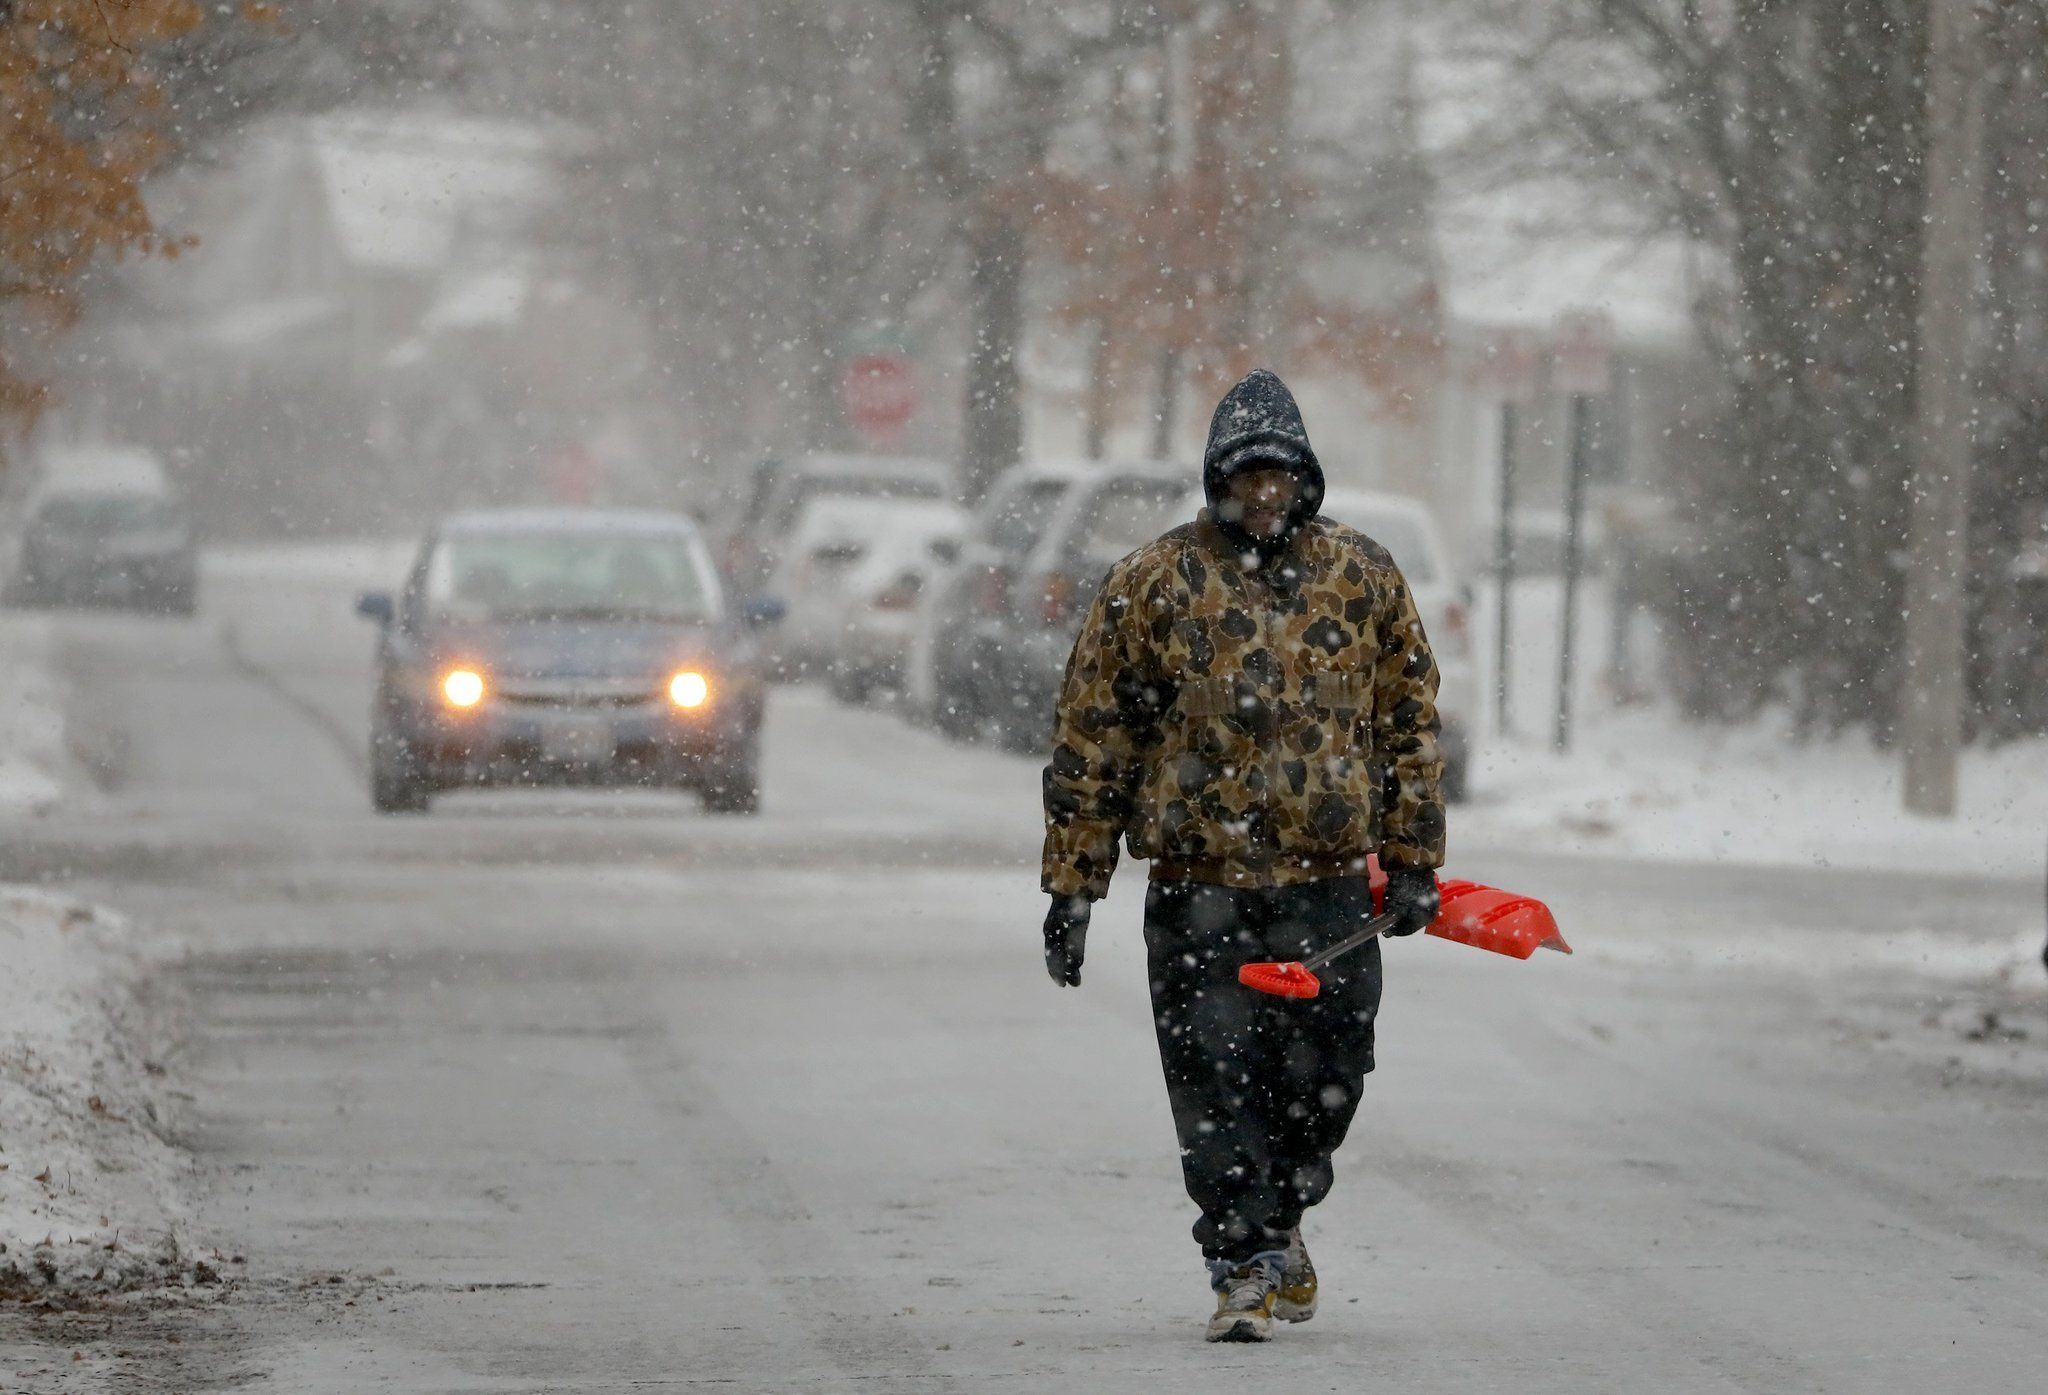 Deadly storms barrel through U.S. with snow, ice, wind, tornadoes